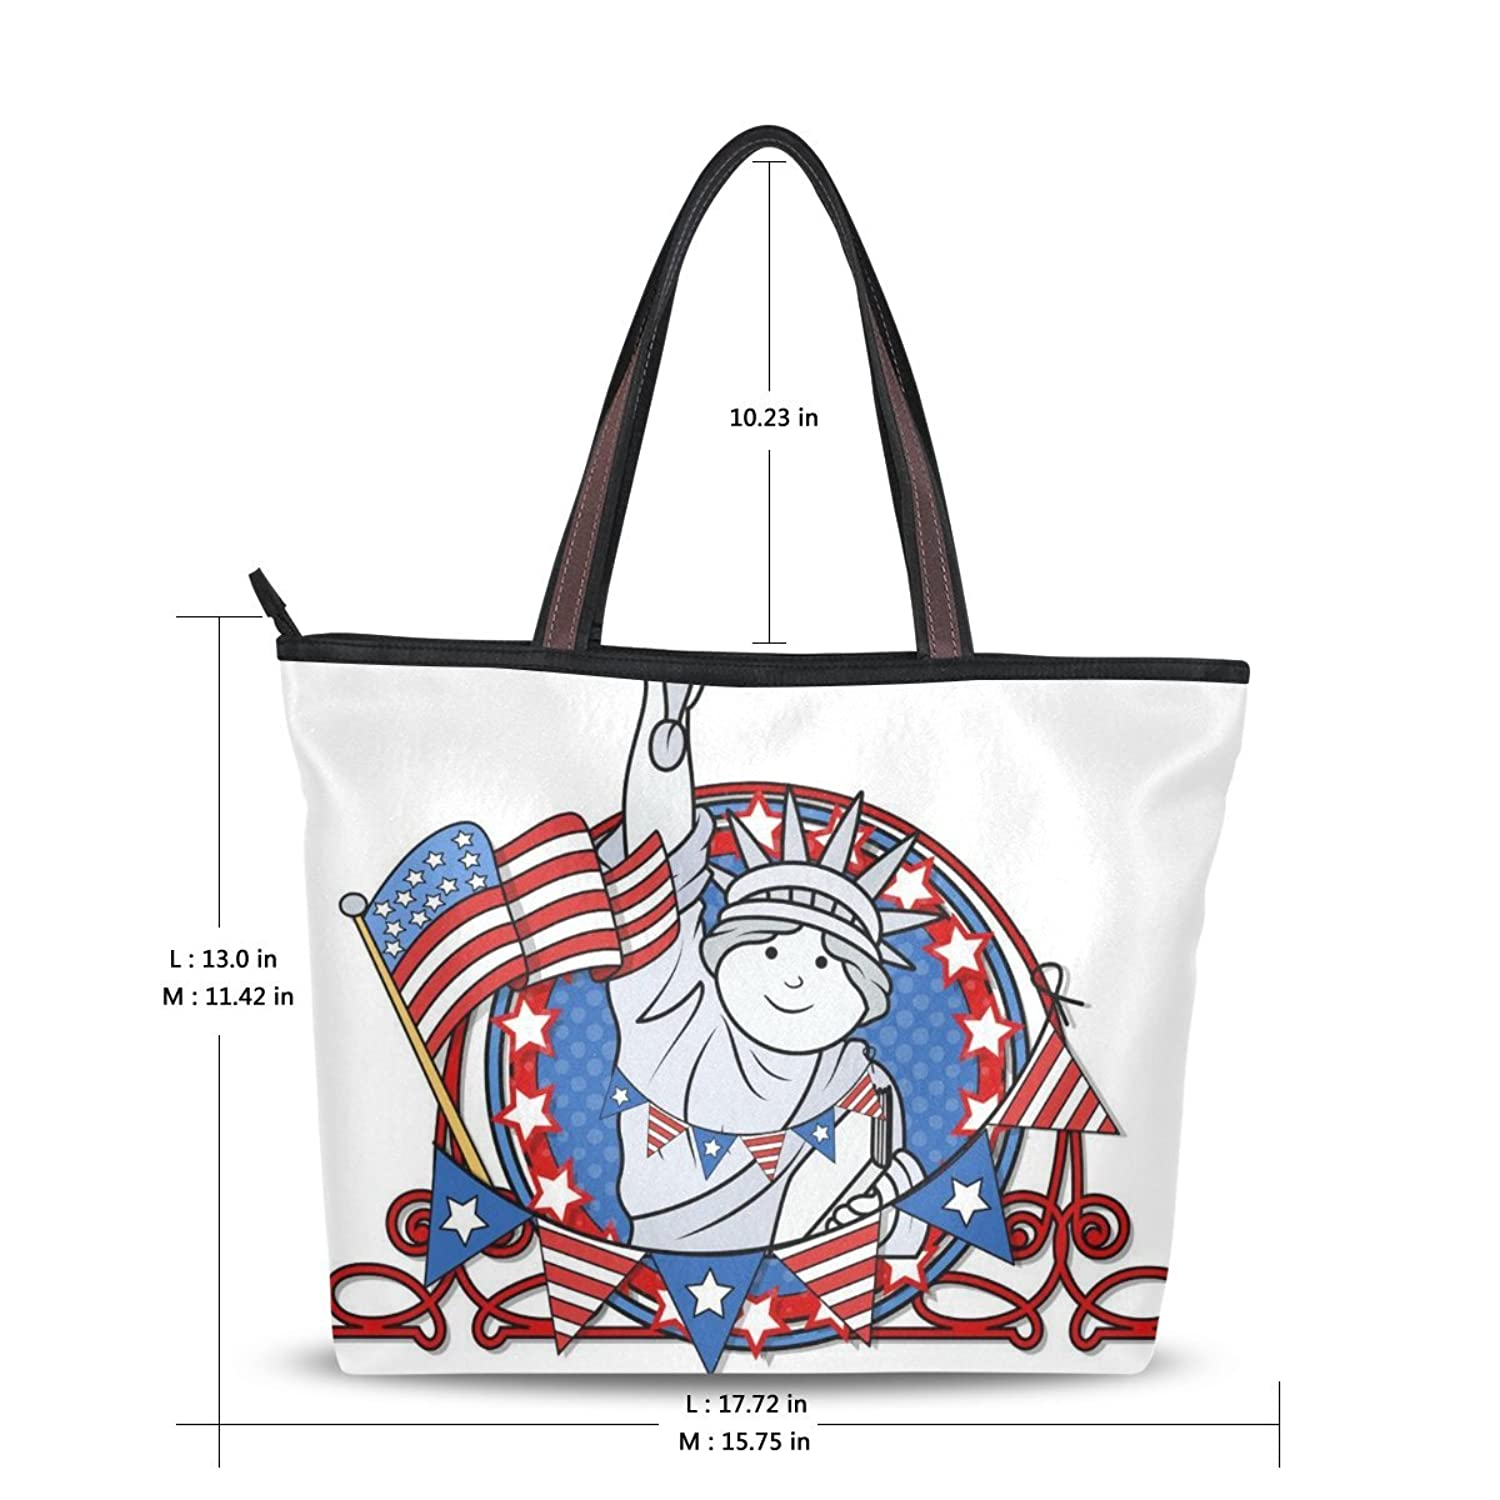 WHBAG New Design Handbag For Women,USA American Flag,Shoulder Bags Tote Bag